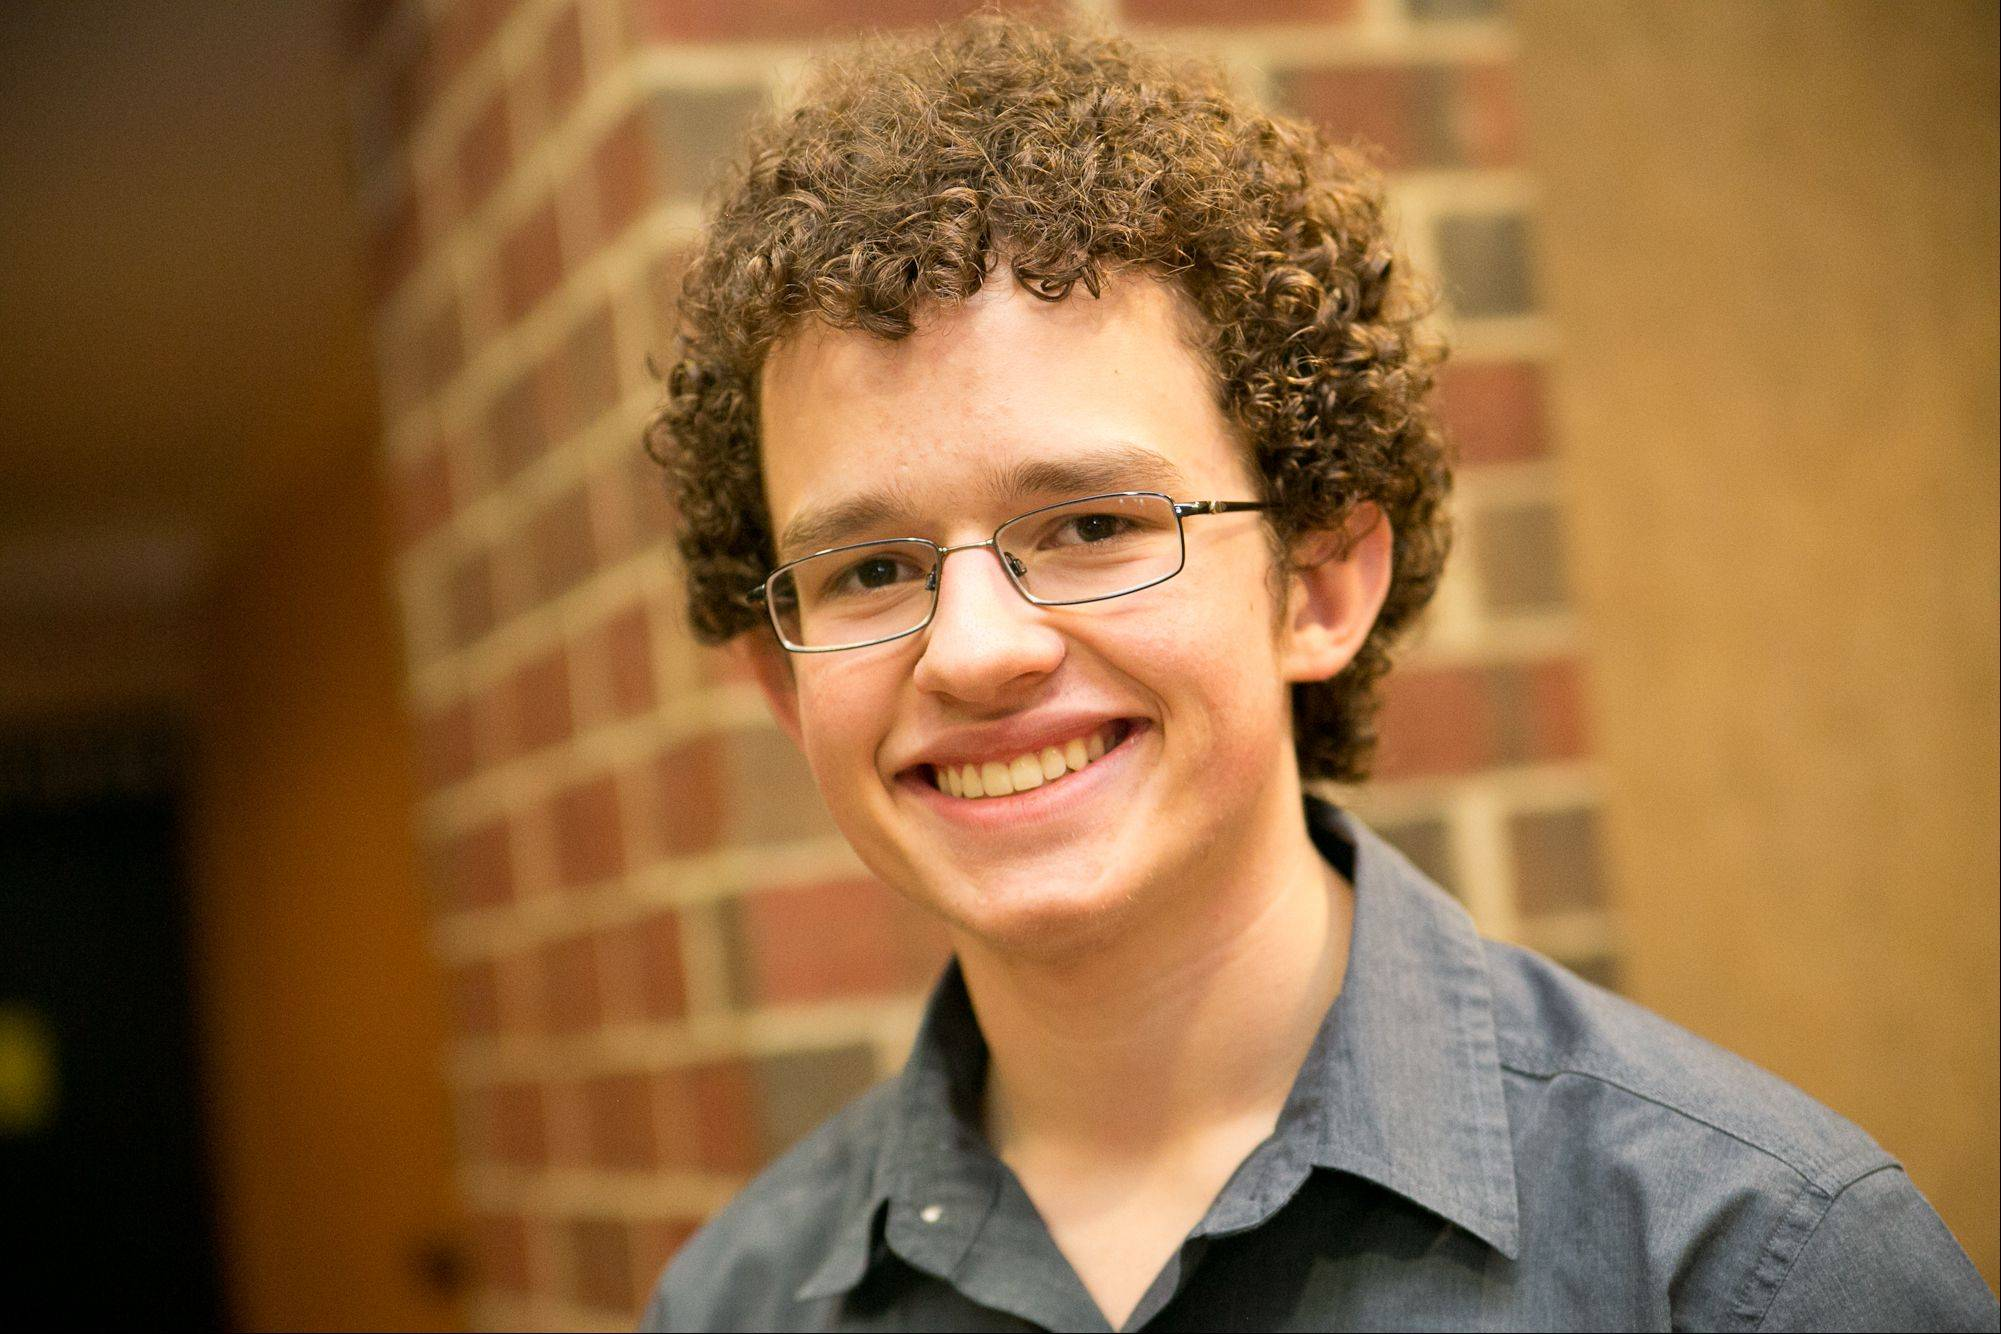 Pianist Joey White of Huntley is one of the Top 30 finalists in Suburban Chicago's Got Talent.